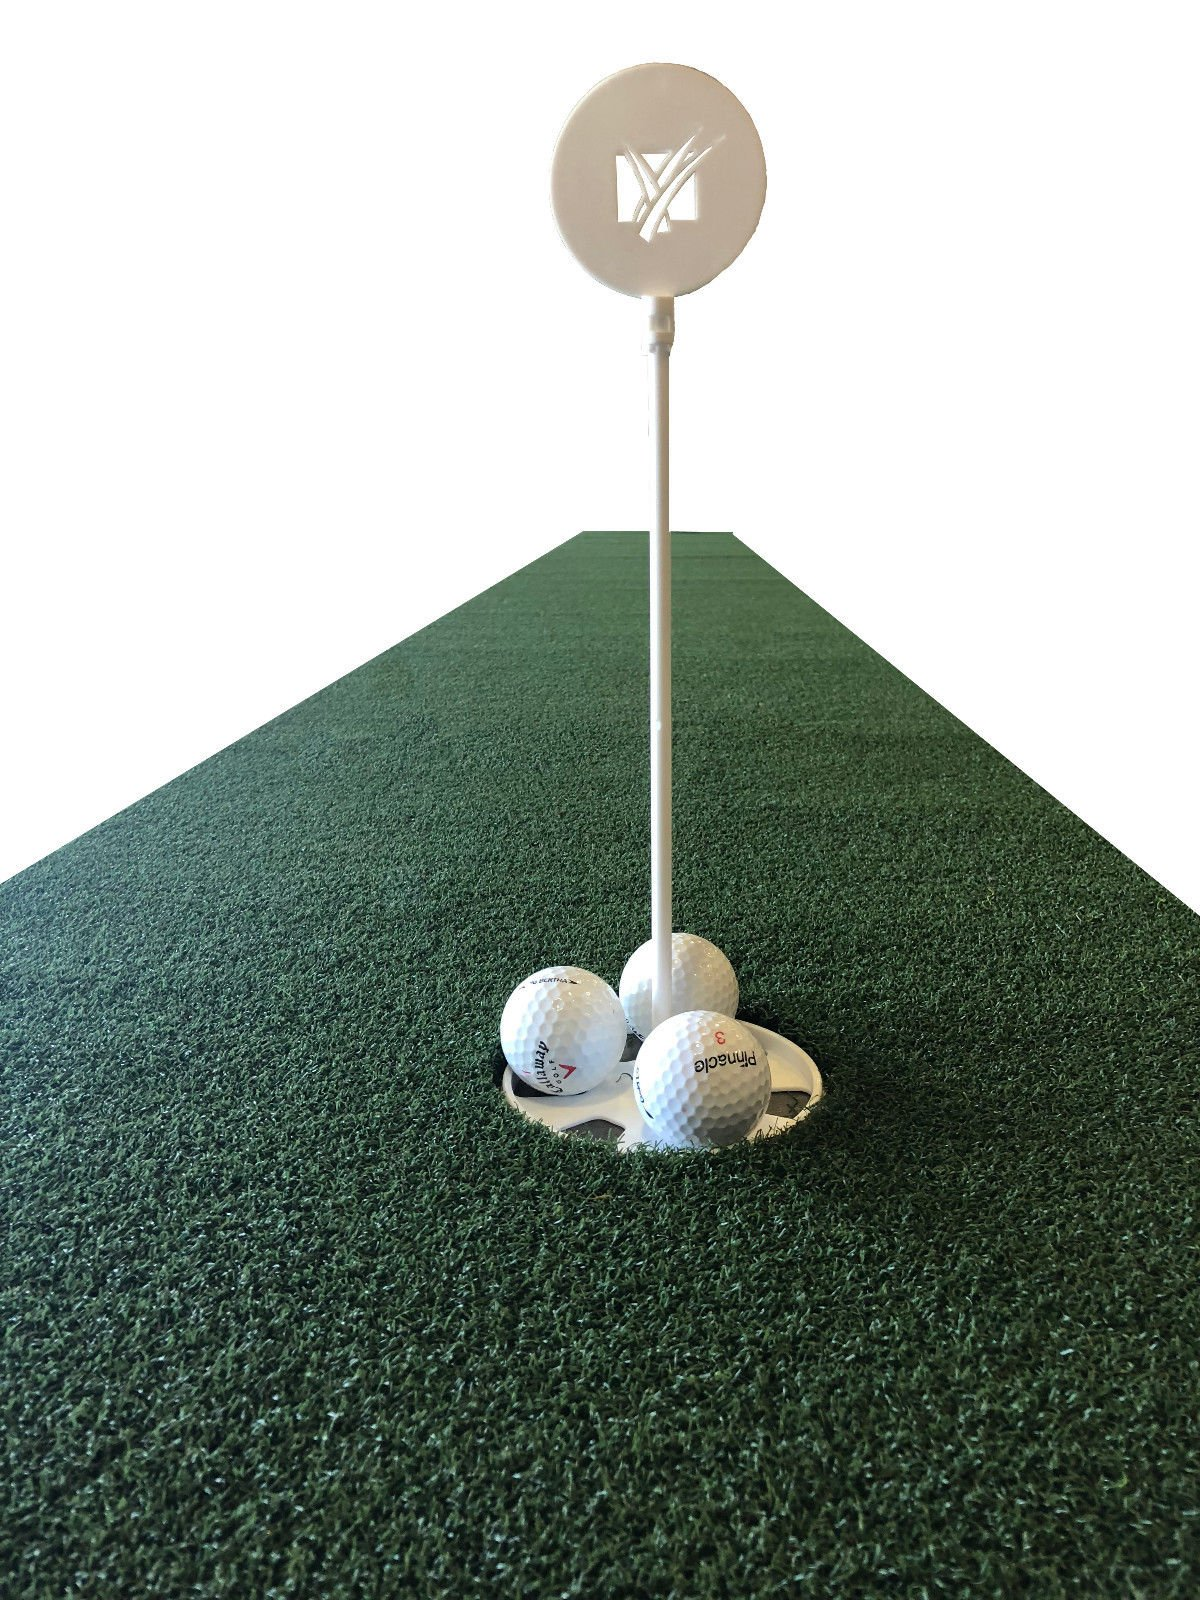 PREMIUM PRO TURF Golf Putting Green Cup For Indoor Outdoor Putting Greens